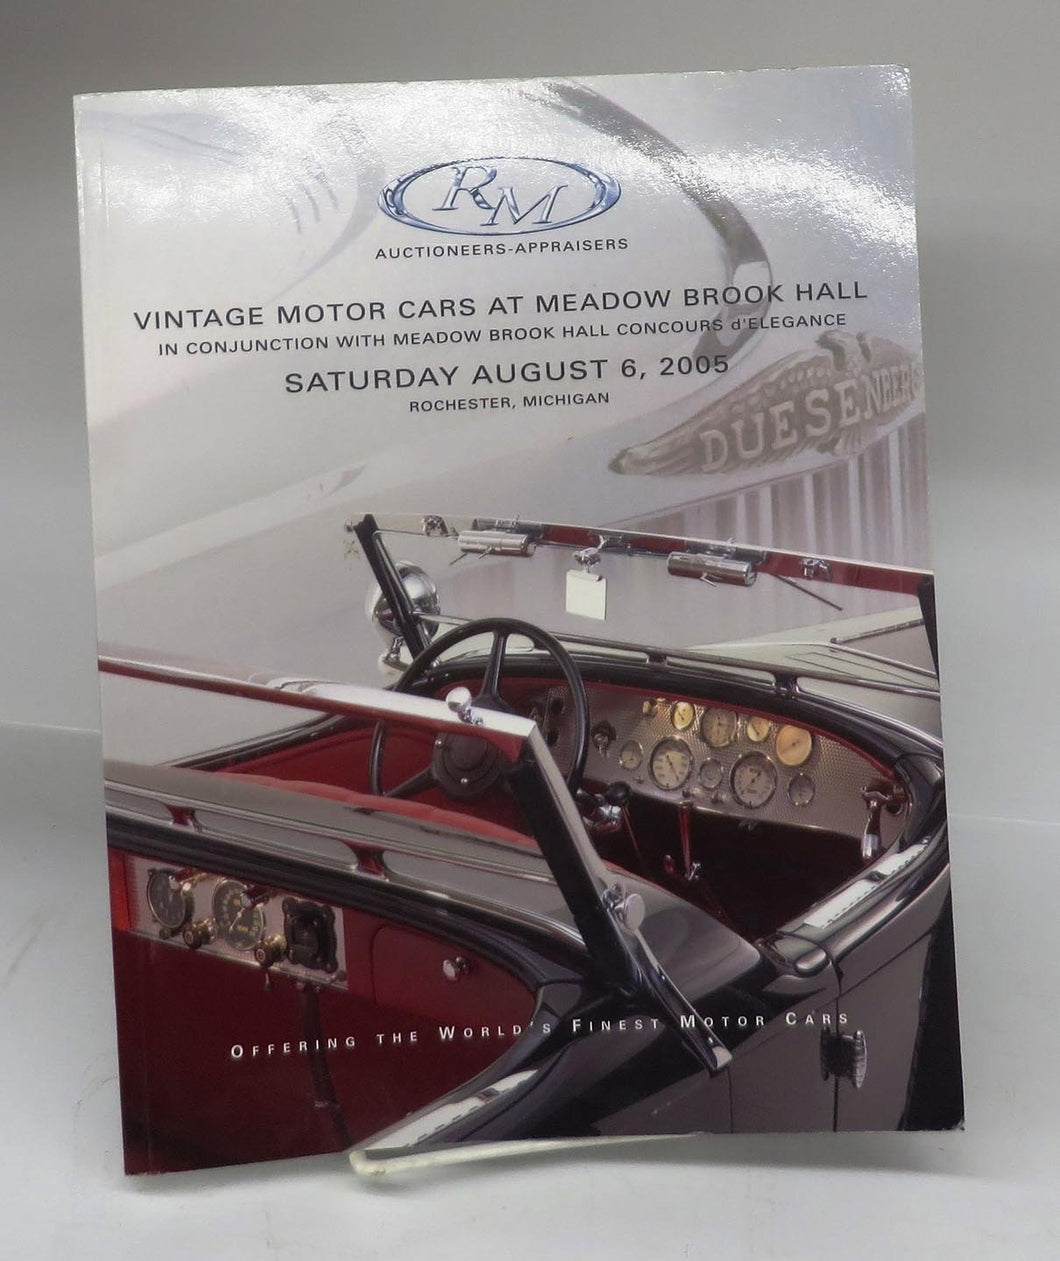 Vintage Motor Cars at Meadow Brook Hall